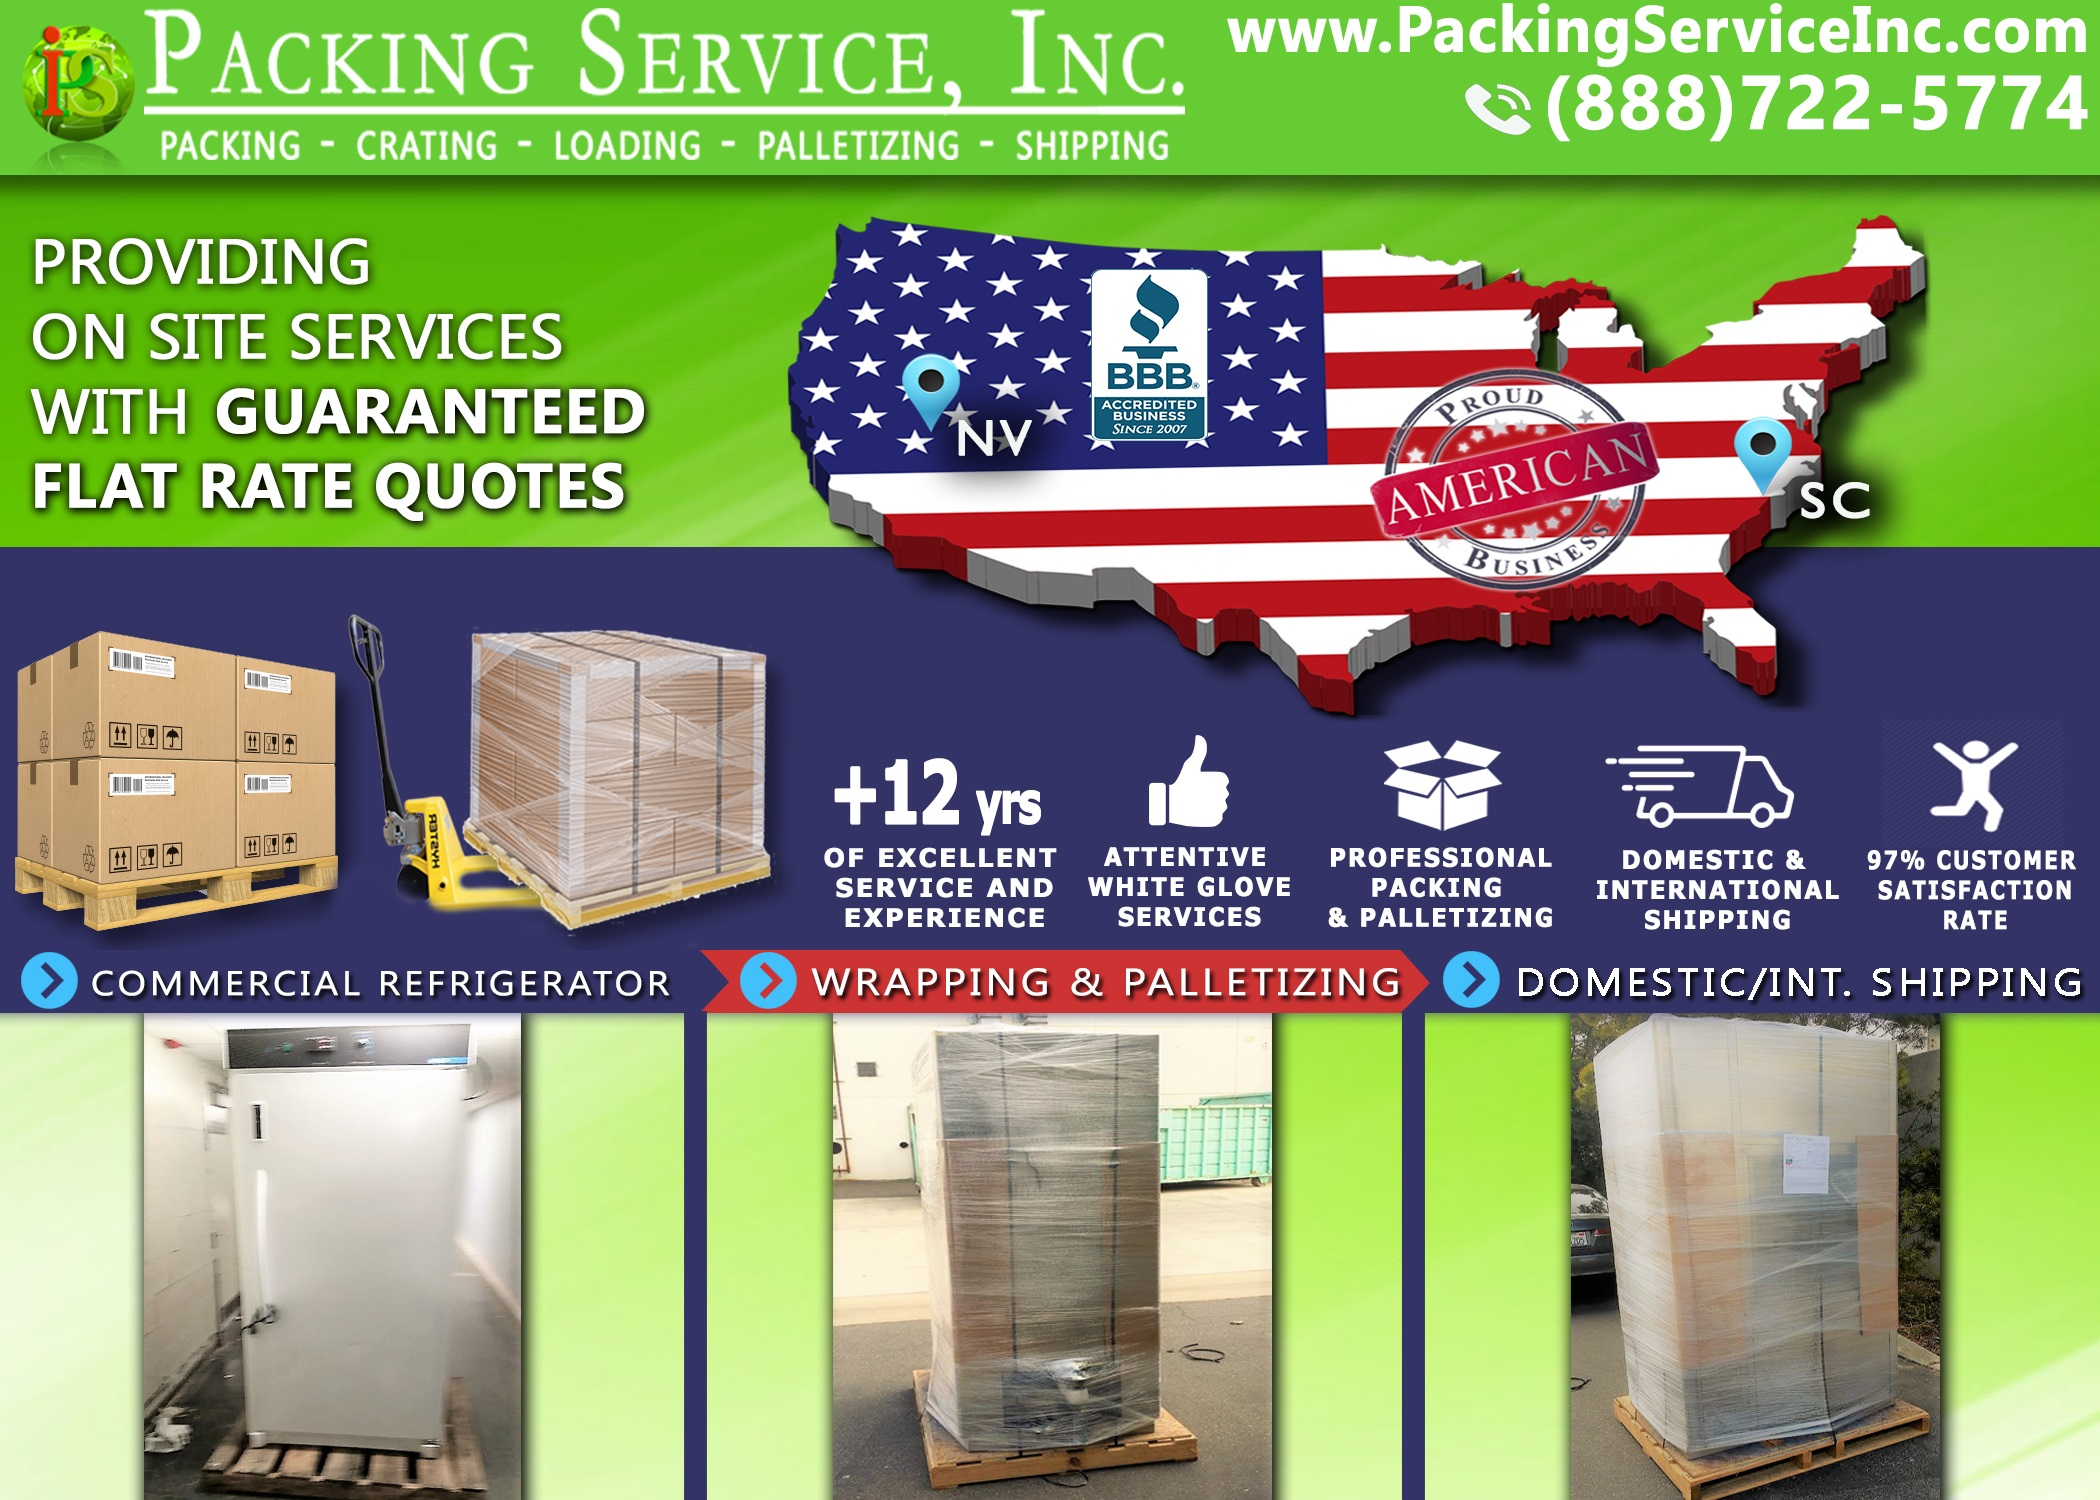 Wrap Commercial Fridge, Palletize and Ship from Nevada to South Carolina with Packing Service, Inc. - 272